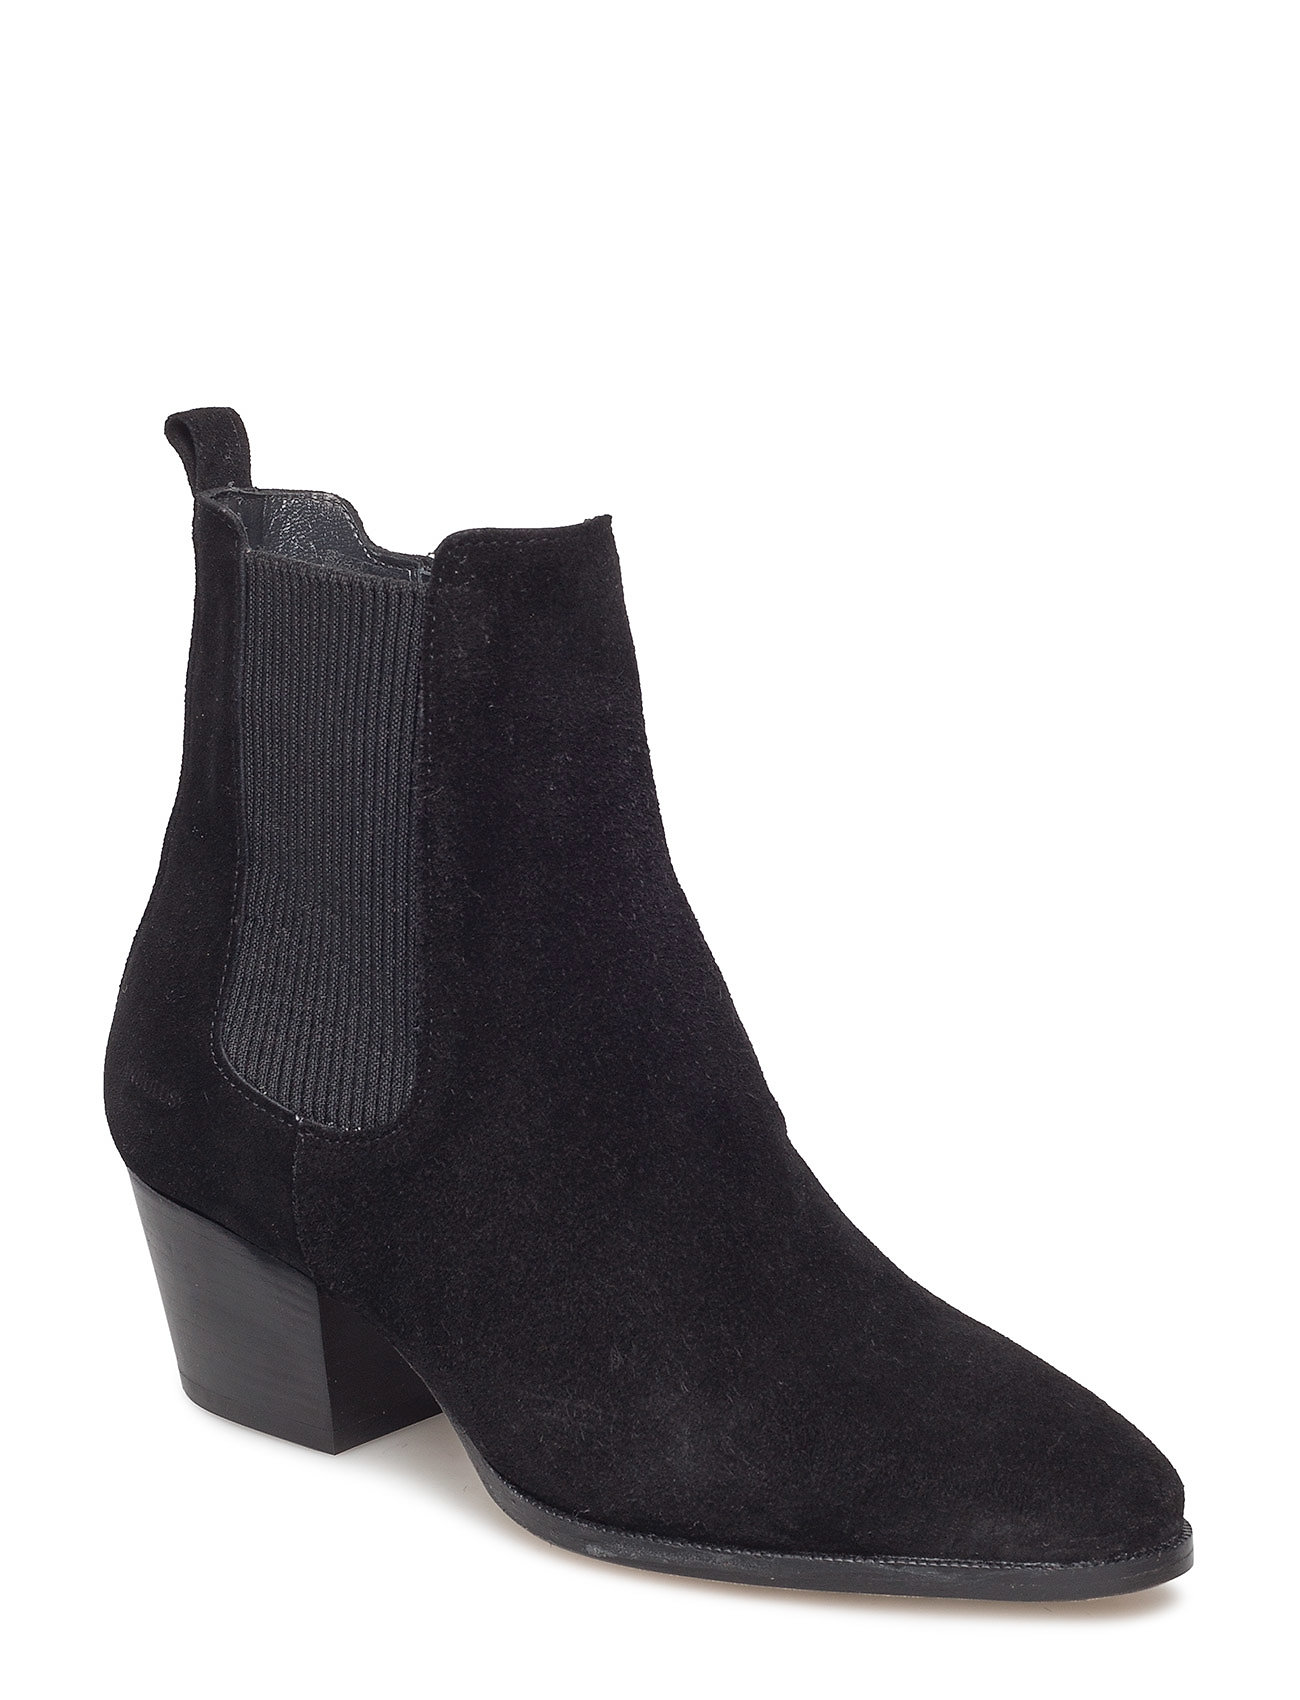 Image of Booties - Block Heel - With Elas Shoes Boots Ankle Boots Ankle Boot - Heel Sort ANGULUS (3470936657)